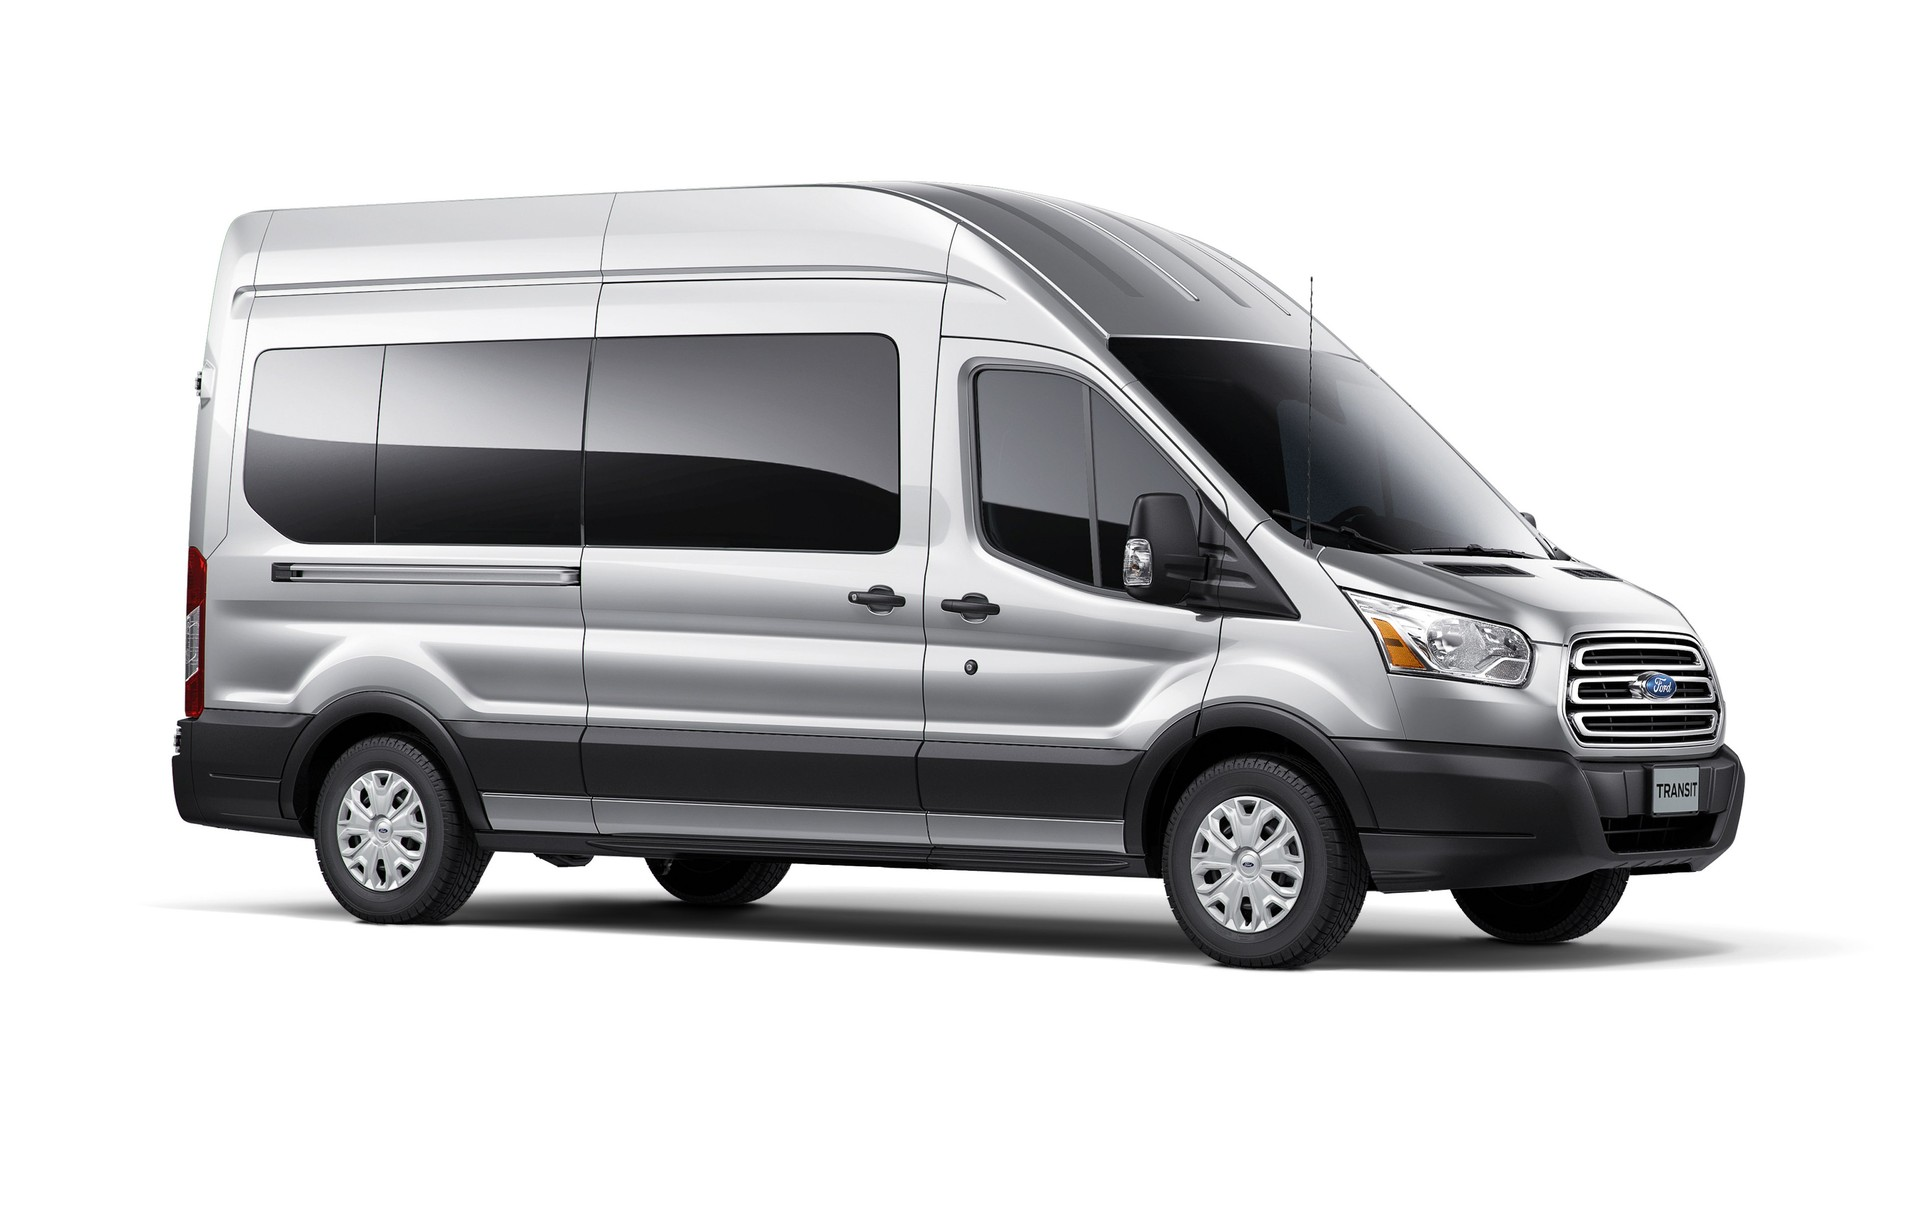 2015 Ford Transit Cargo Van s Gallery The Car Connection